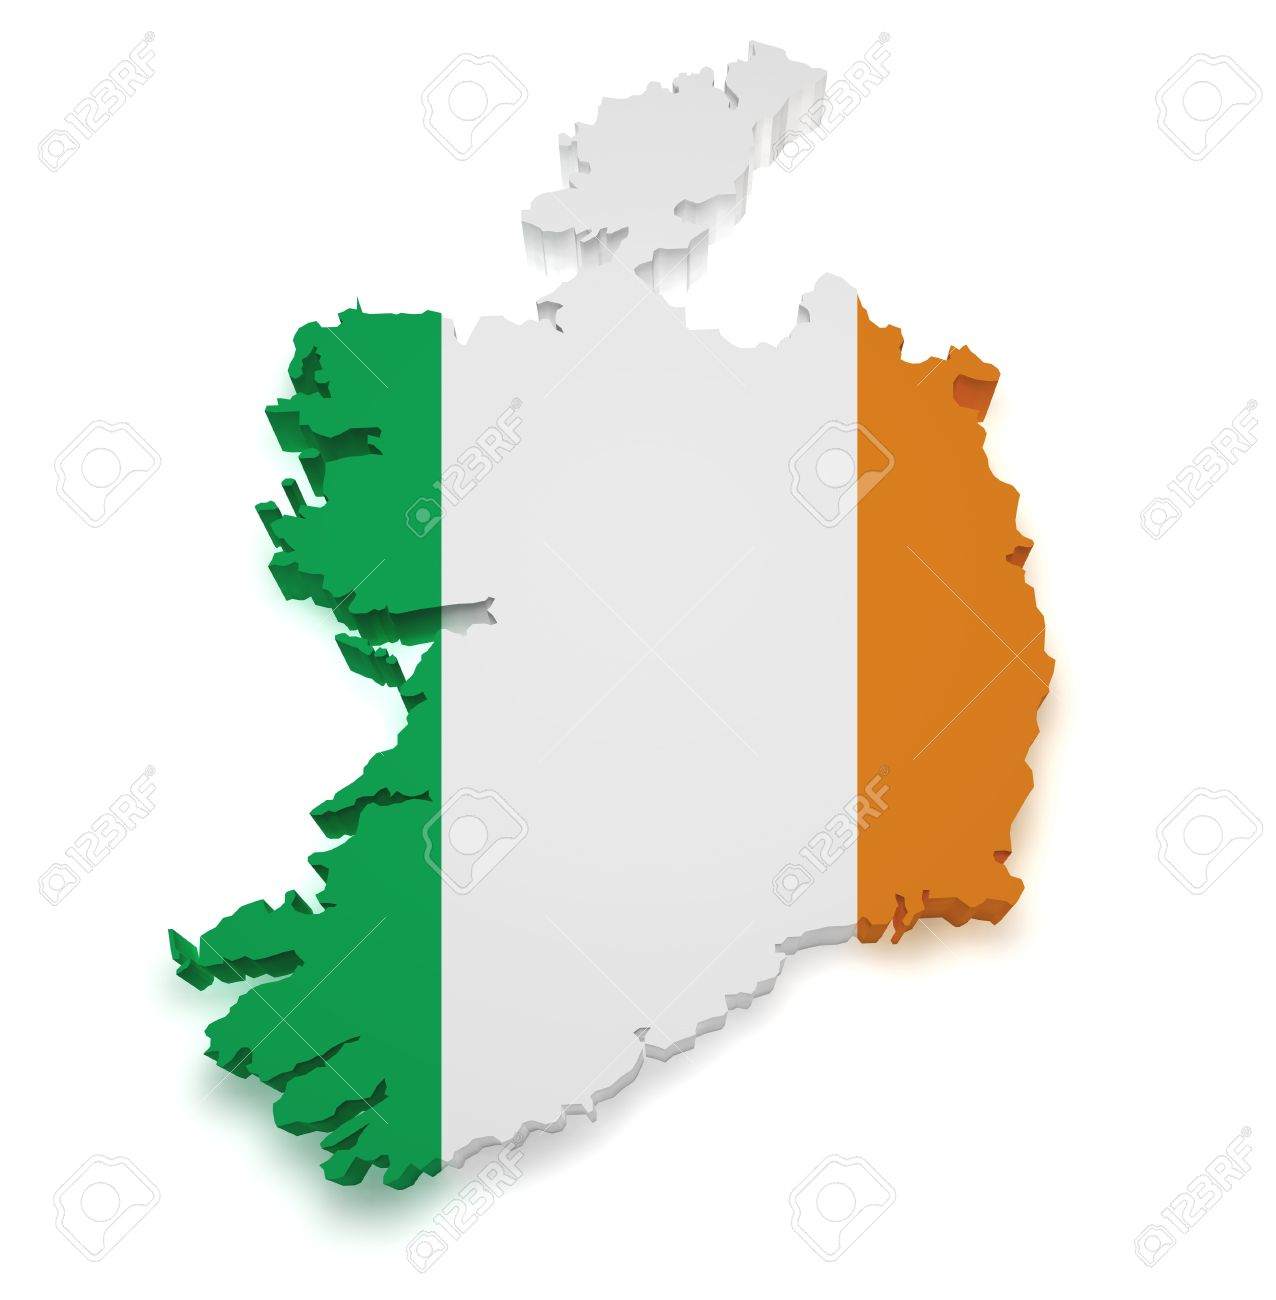 shape 3d of ireland map with flag isolated on white background